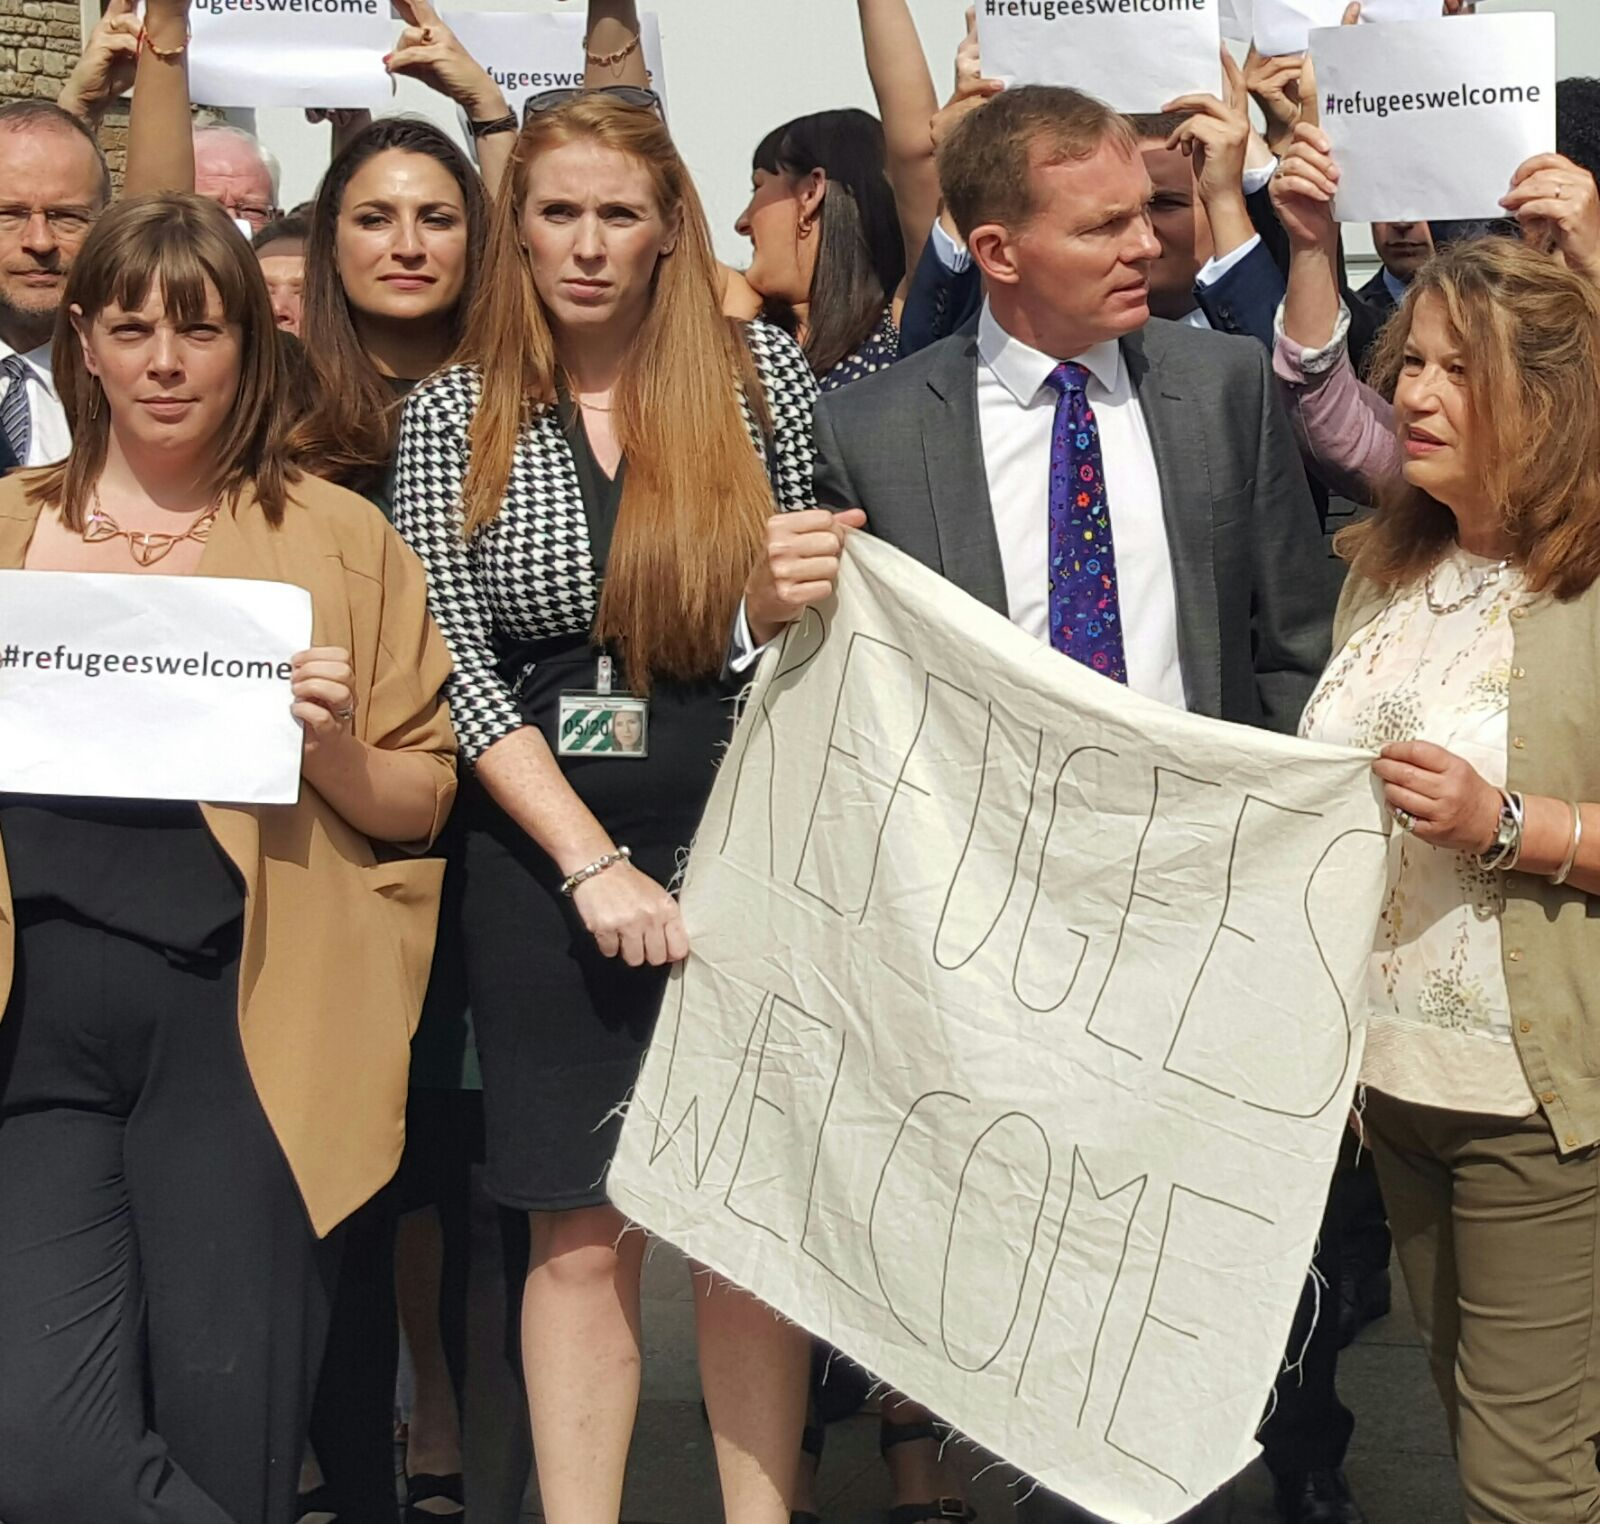 Angela_Rayner_MP_with_other_MPs_join_vigil_in_support_of_refugees.jpg